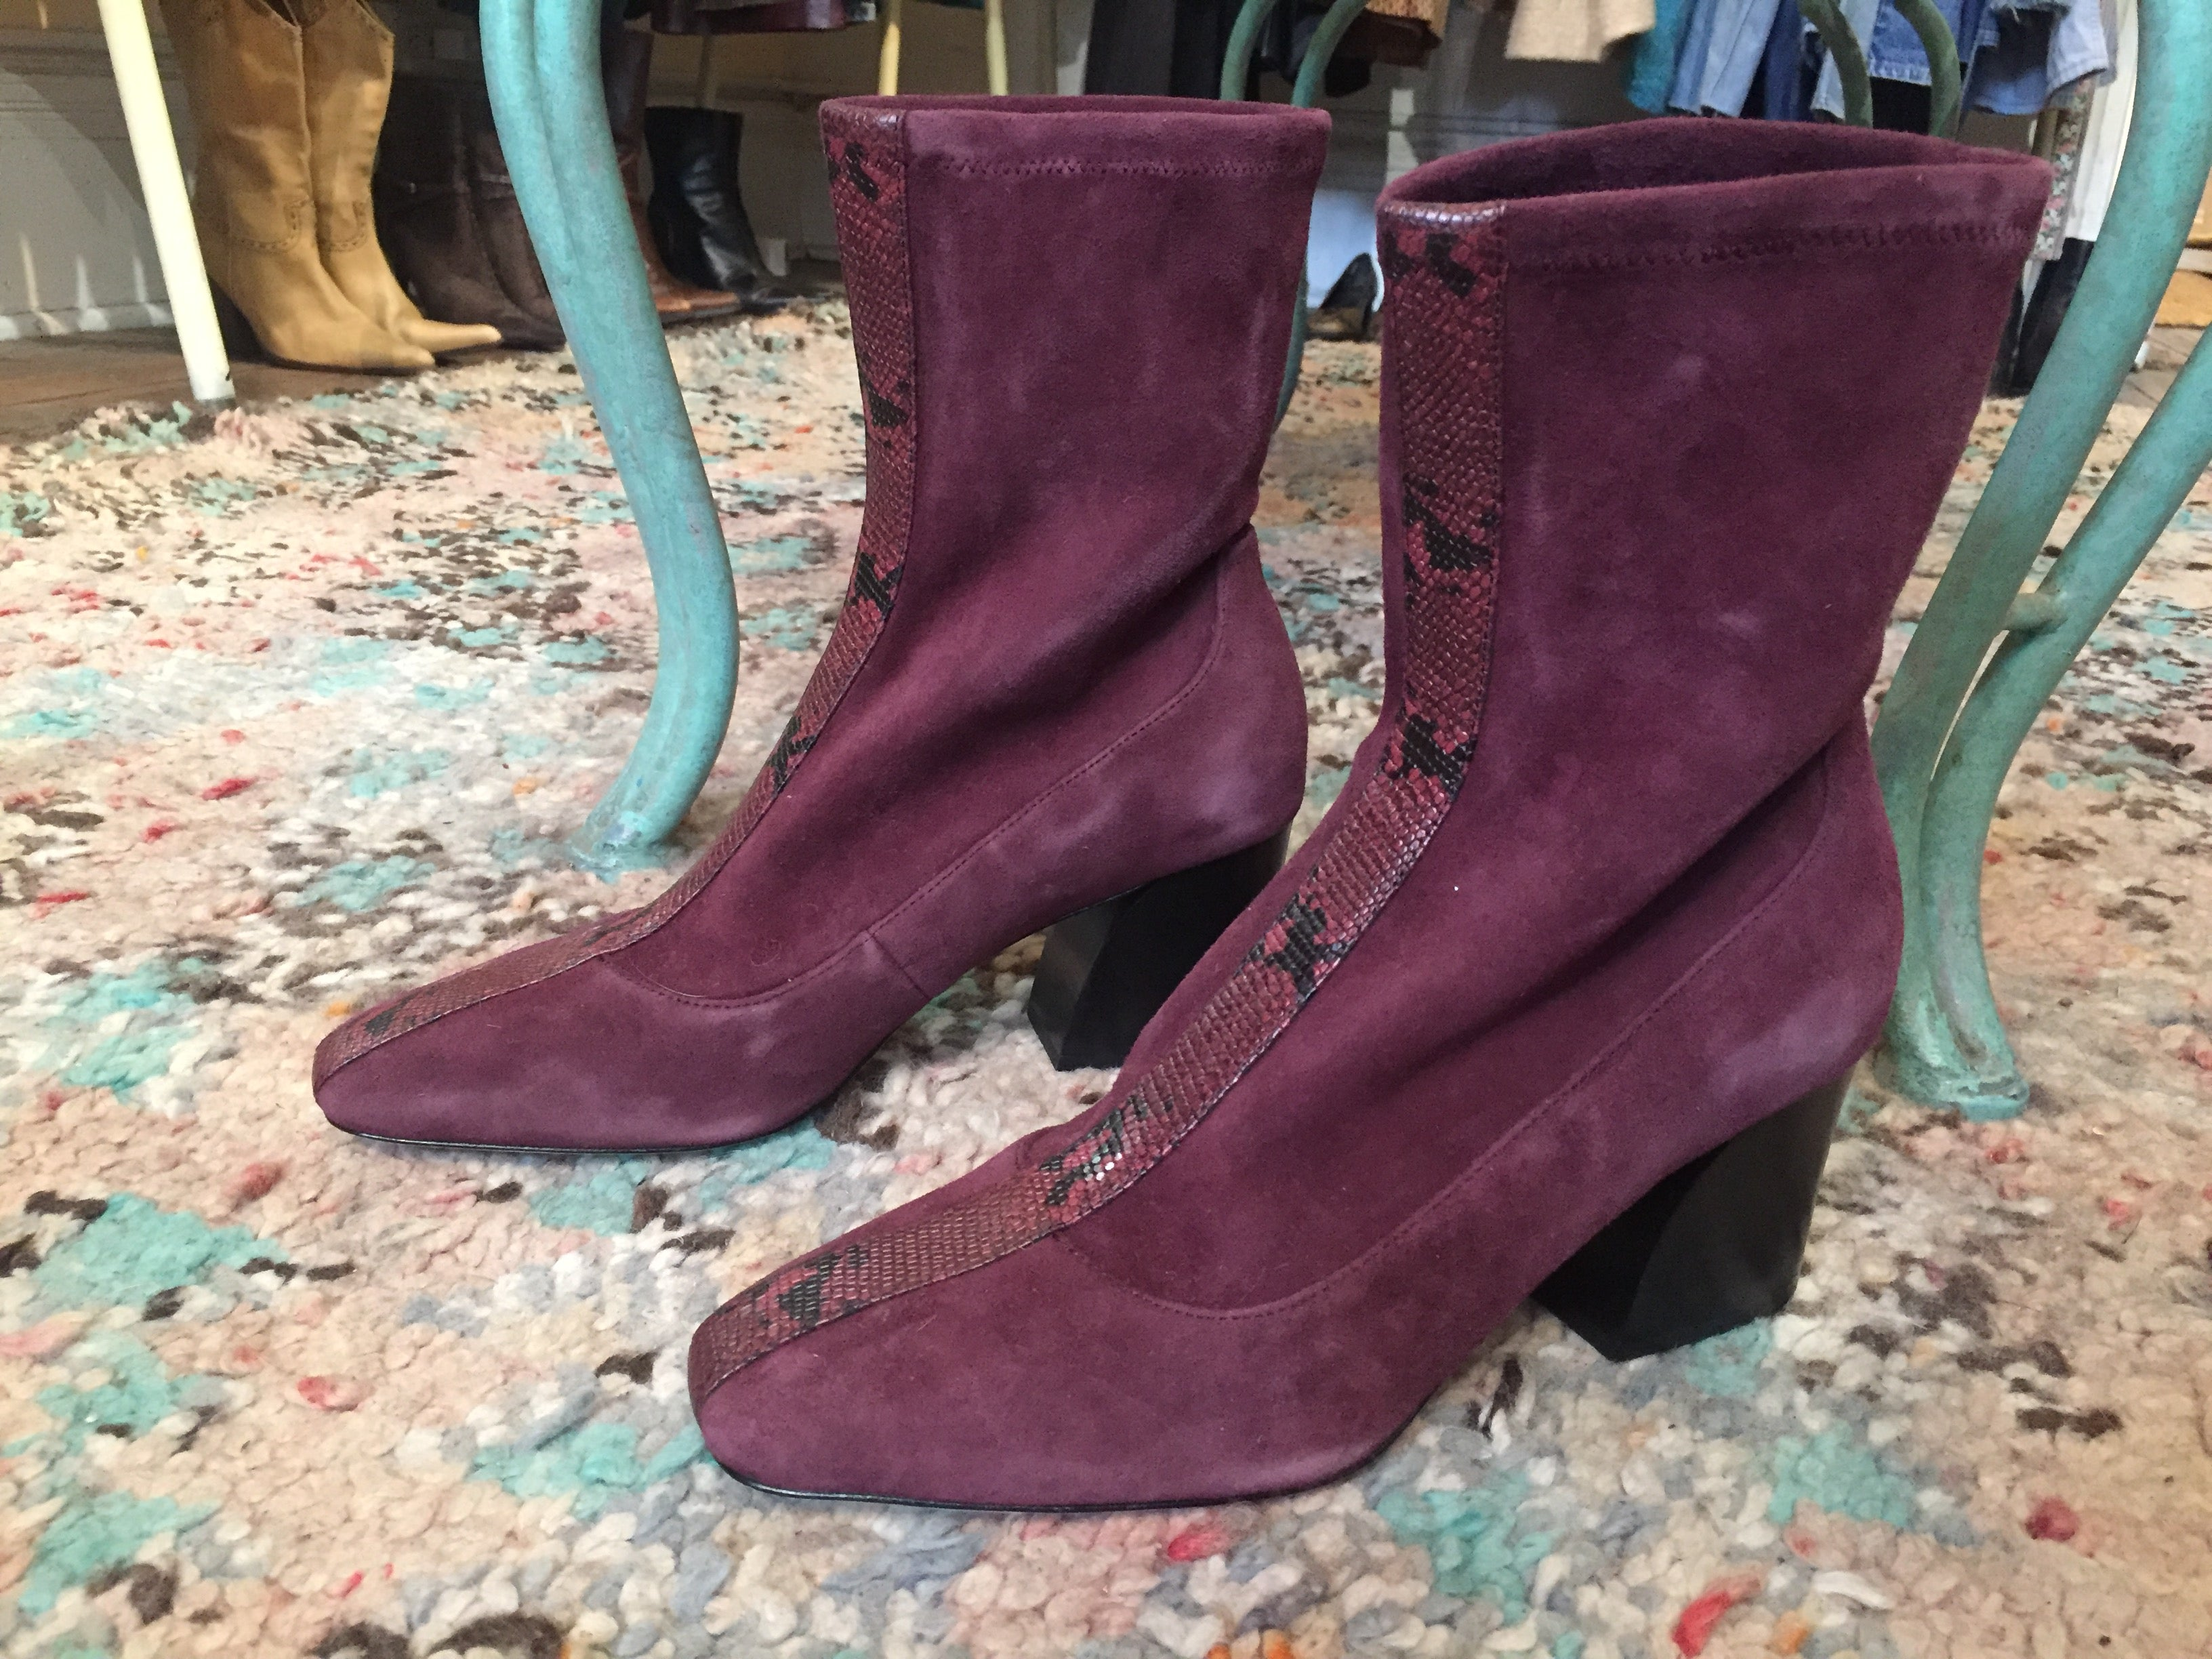 Donald Pliner Snake Piton Animal Suede Leather Purple High Heel Soft Square Front Ankle Boots 10 M